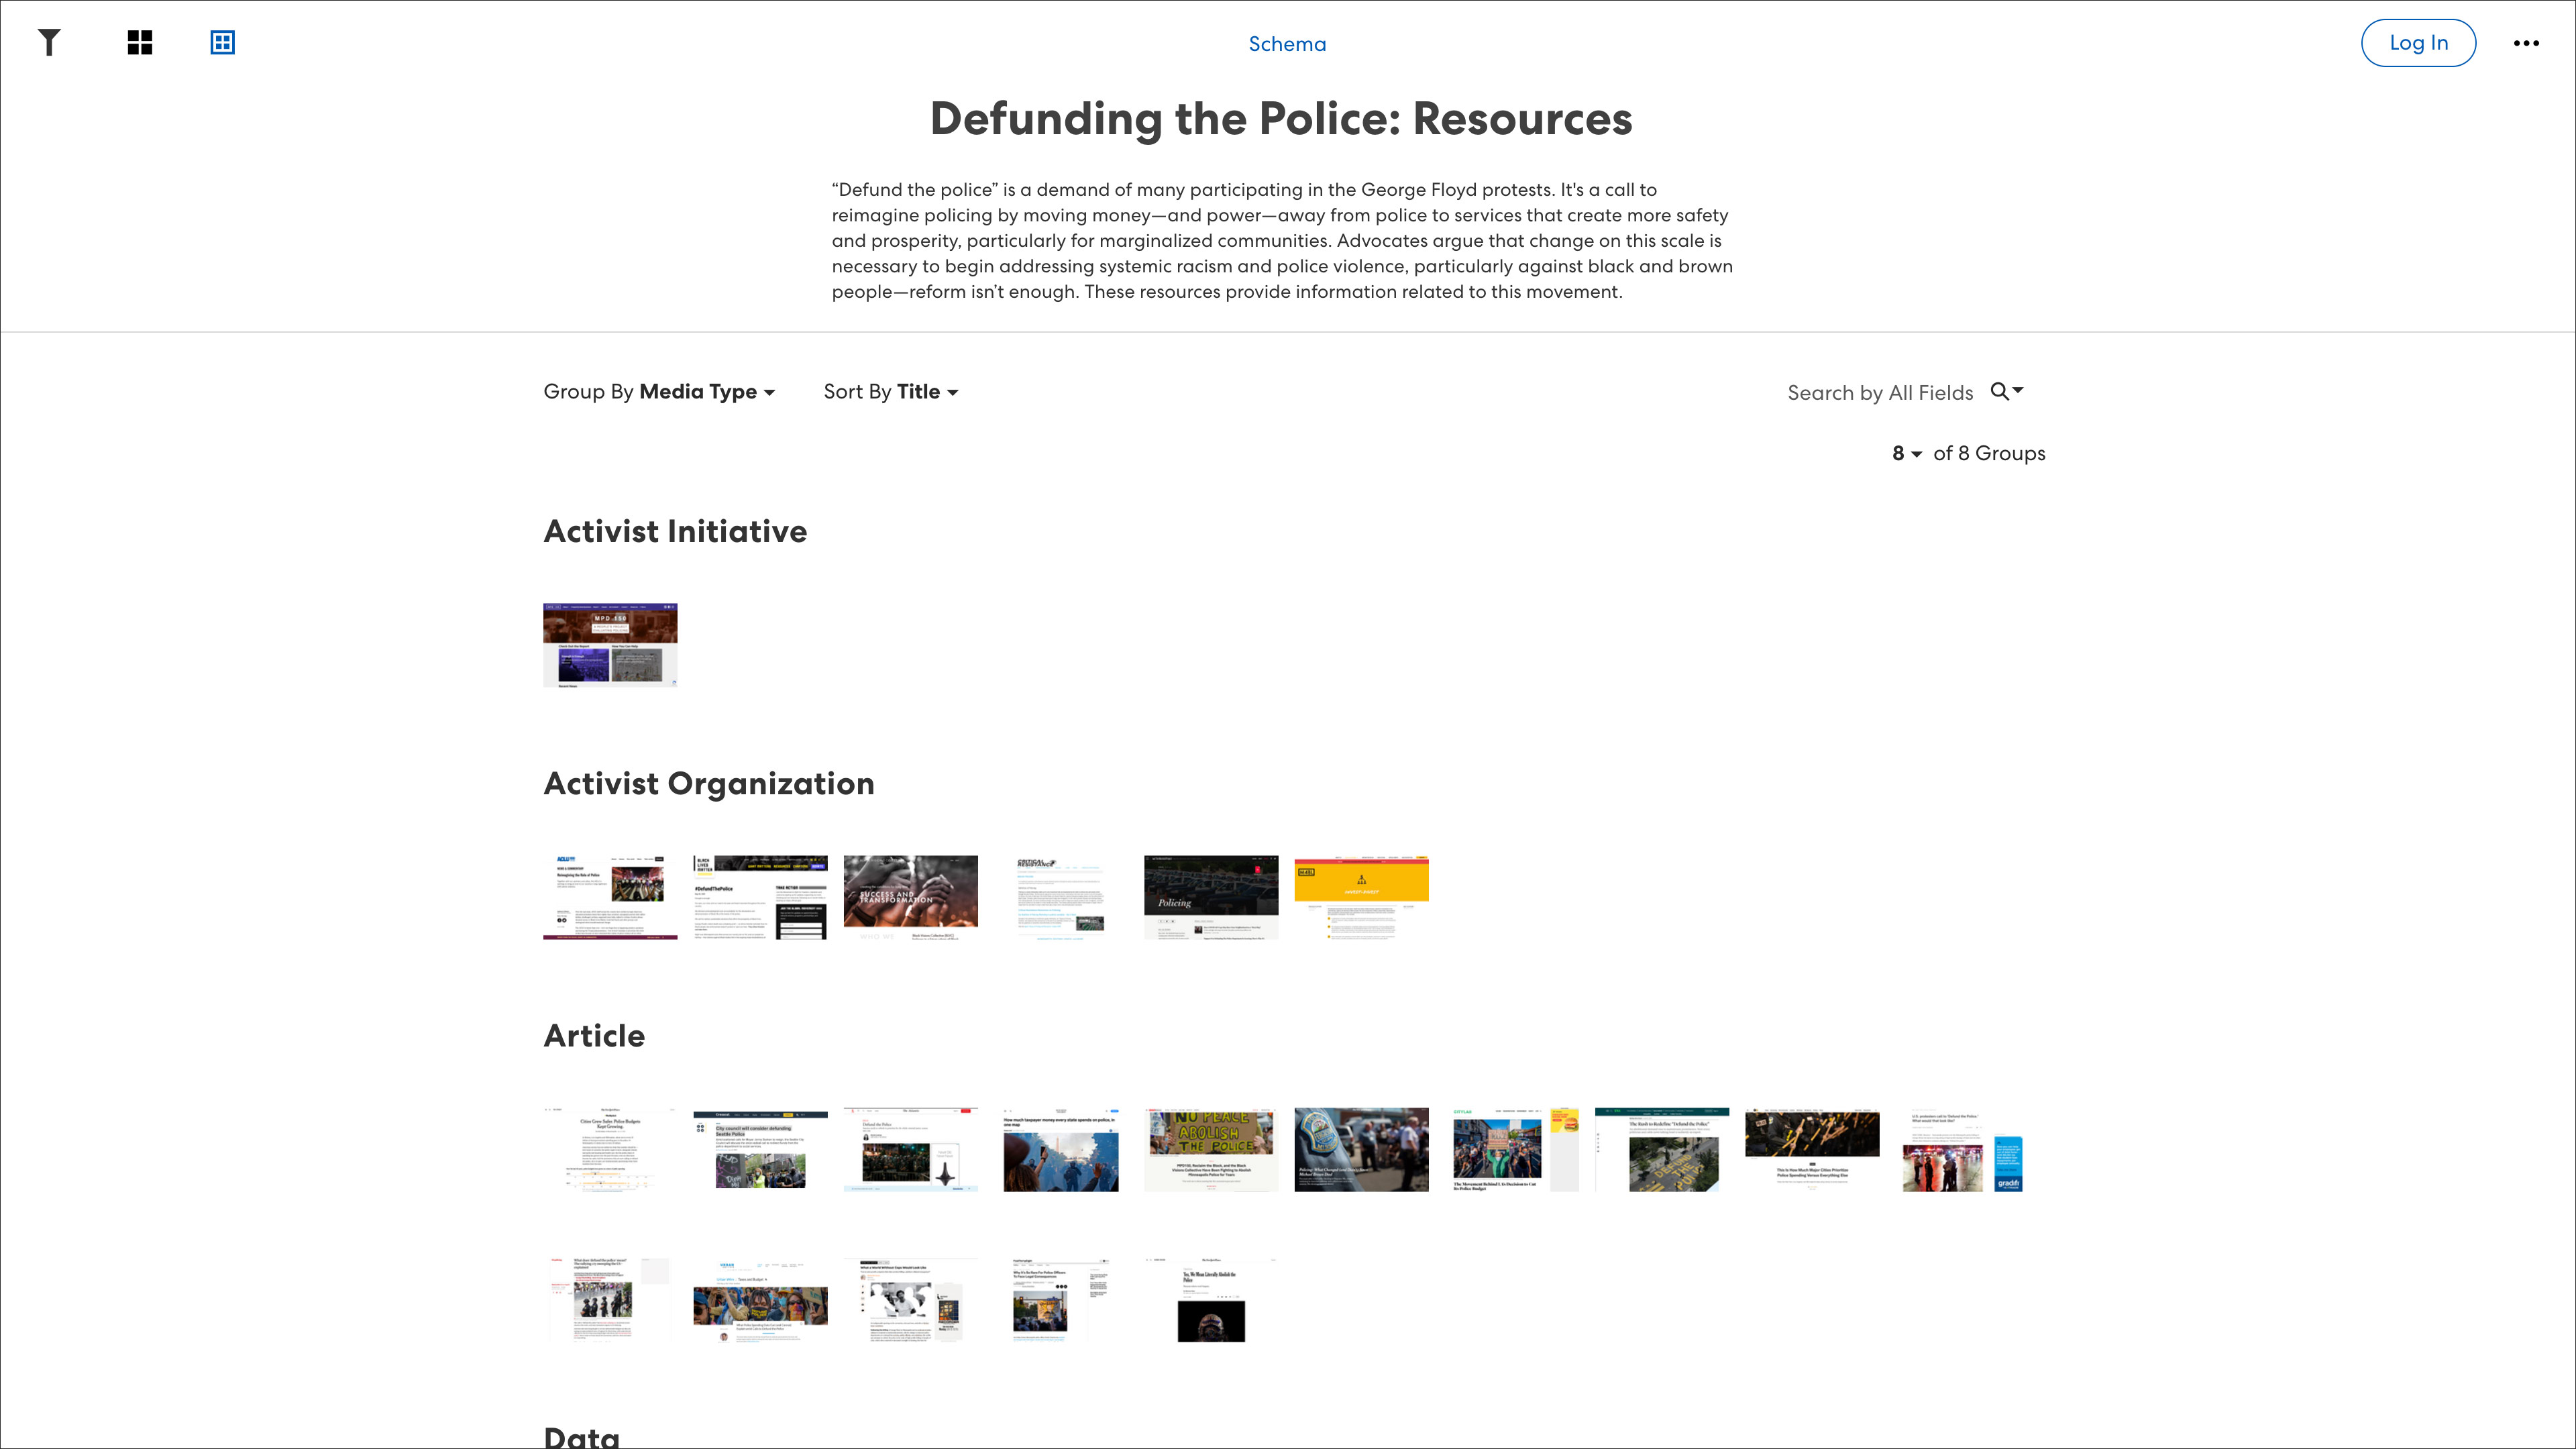 Defunding the Police: Resources